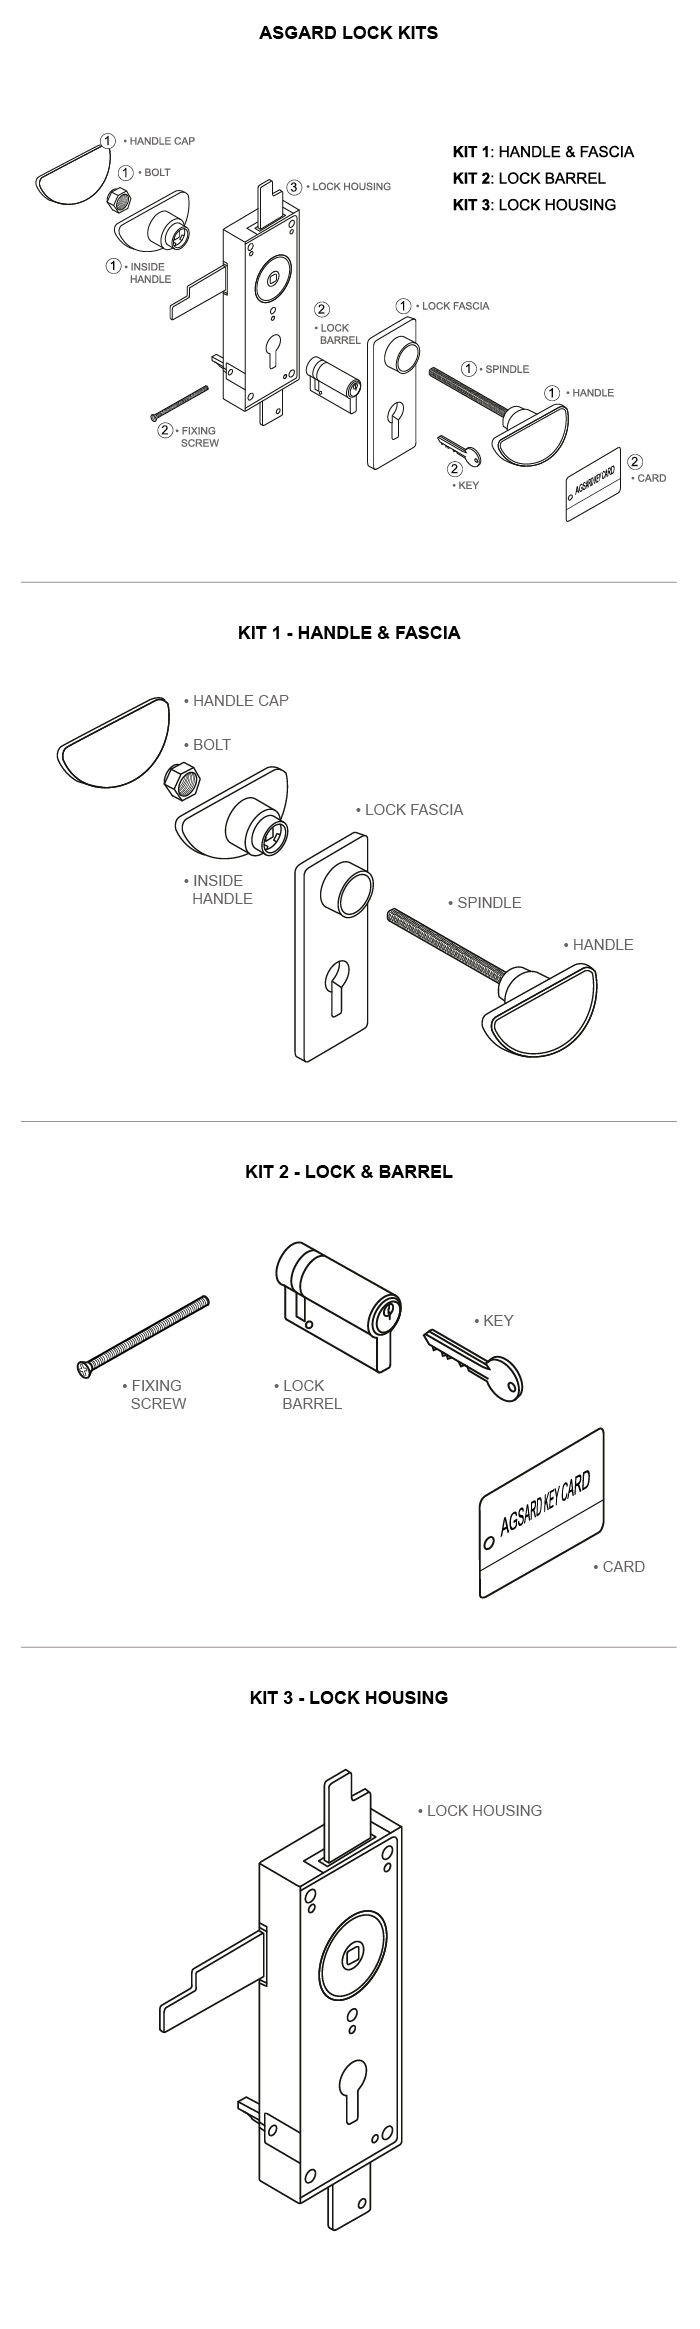 Asgard replacement lock parts